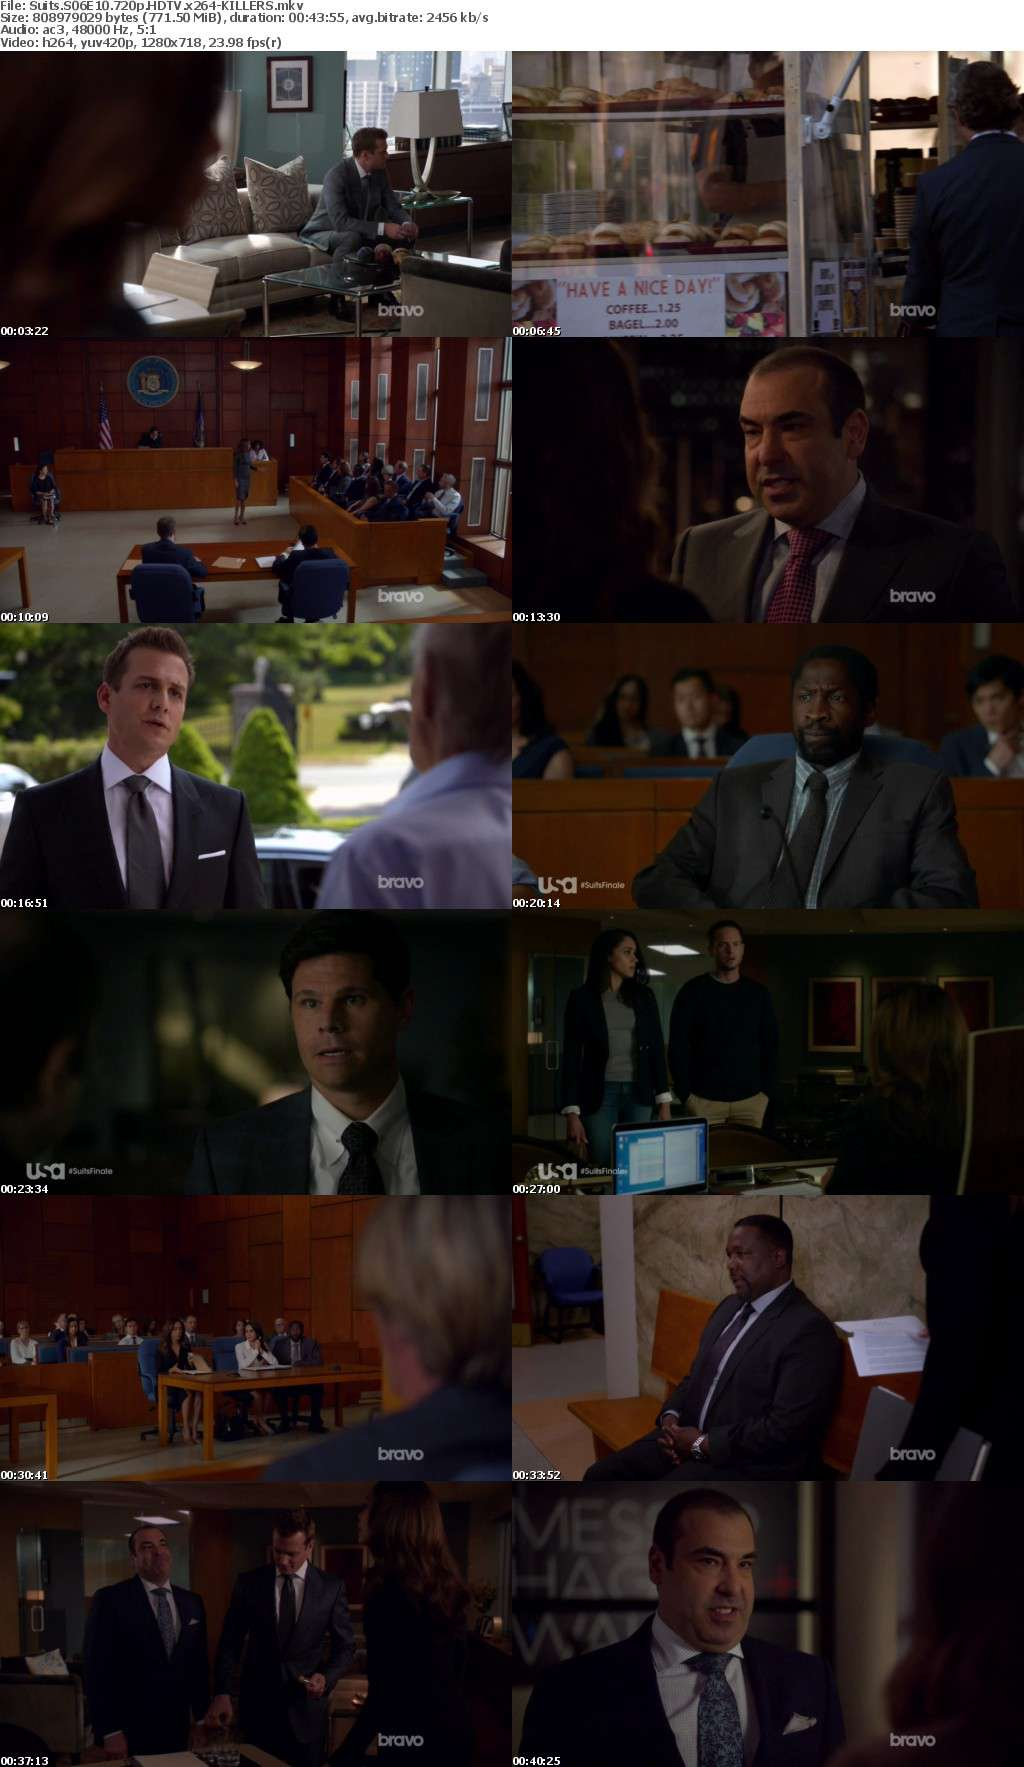 Suits S06E10 720p HDTV x264-KILLERS